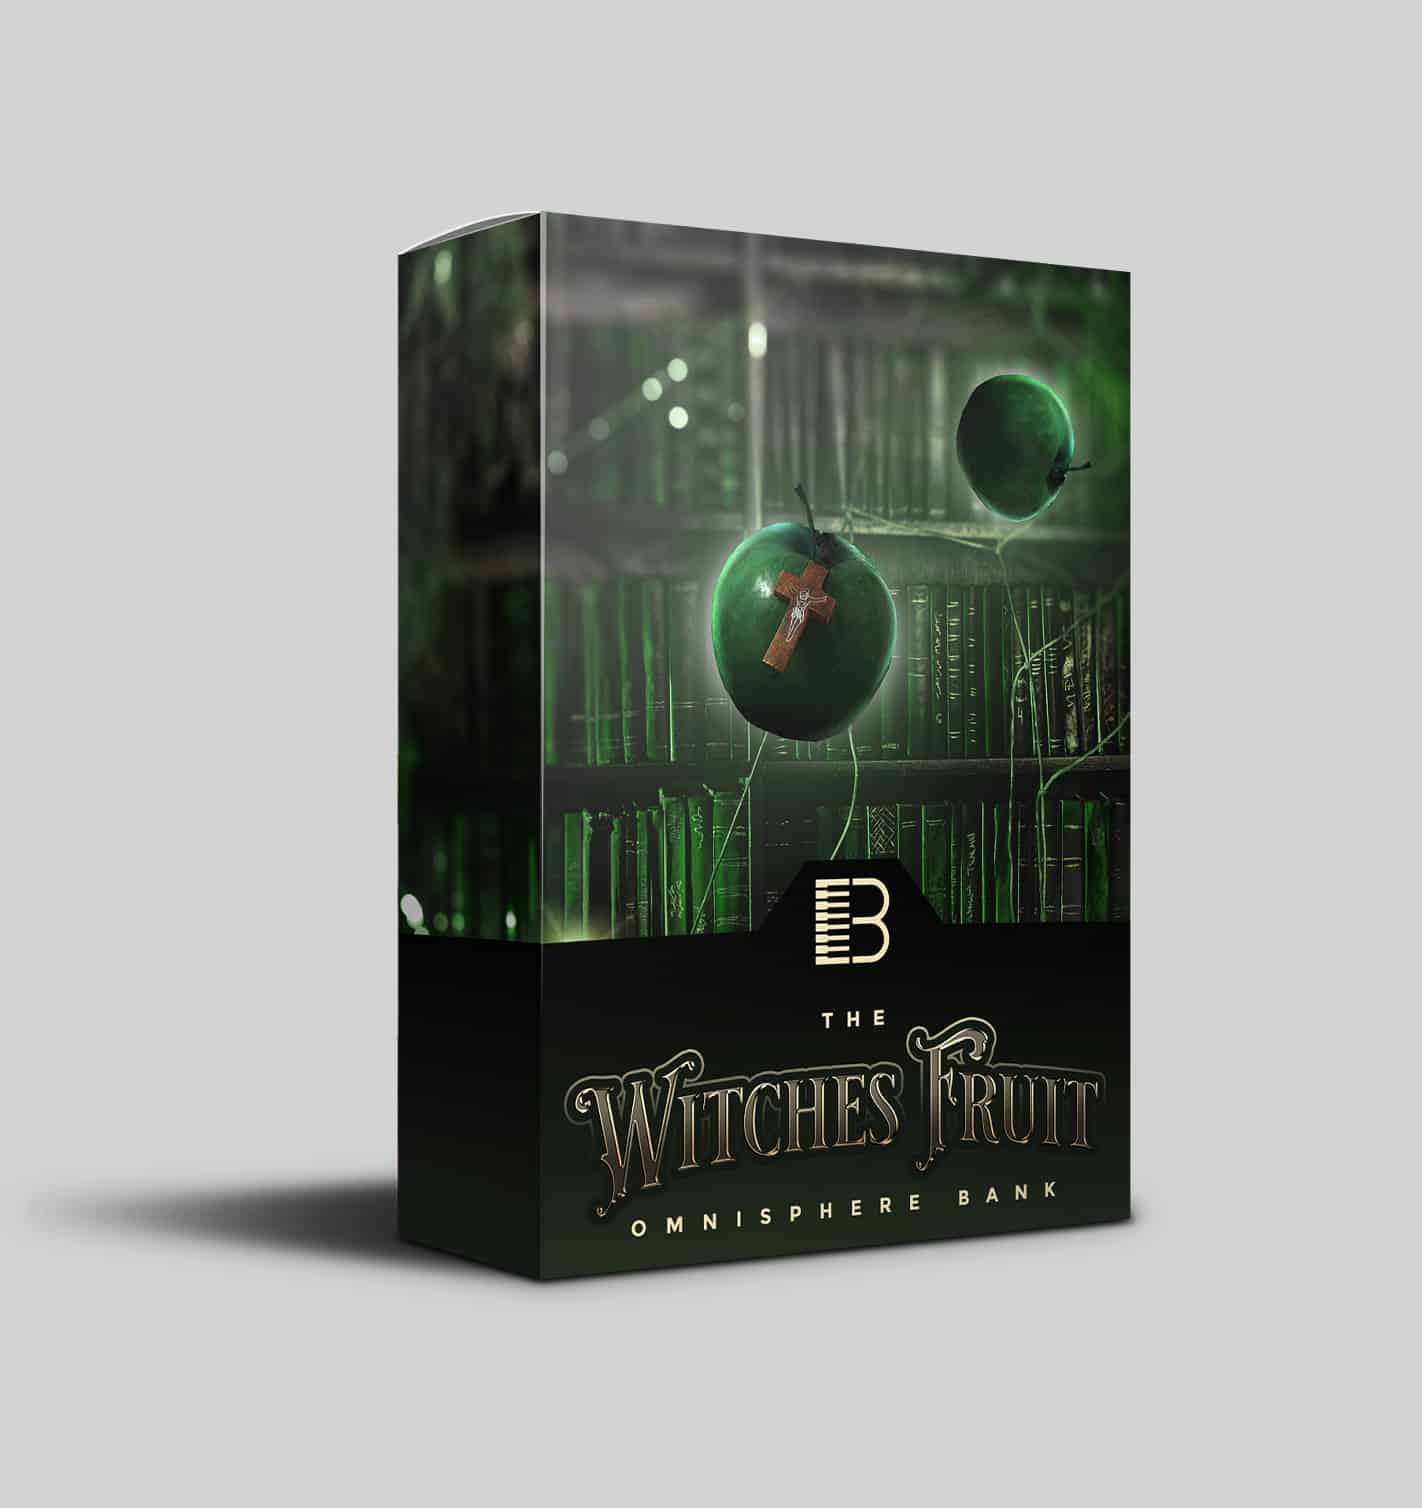 Witches Omnisphere Bank By Brandon Chapa